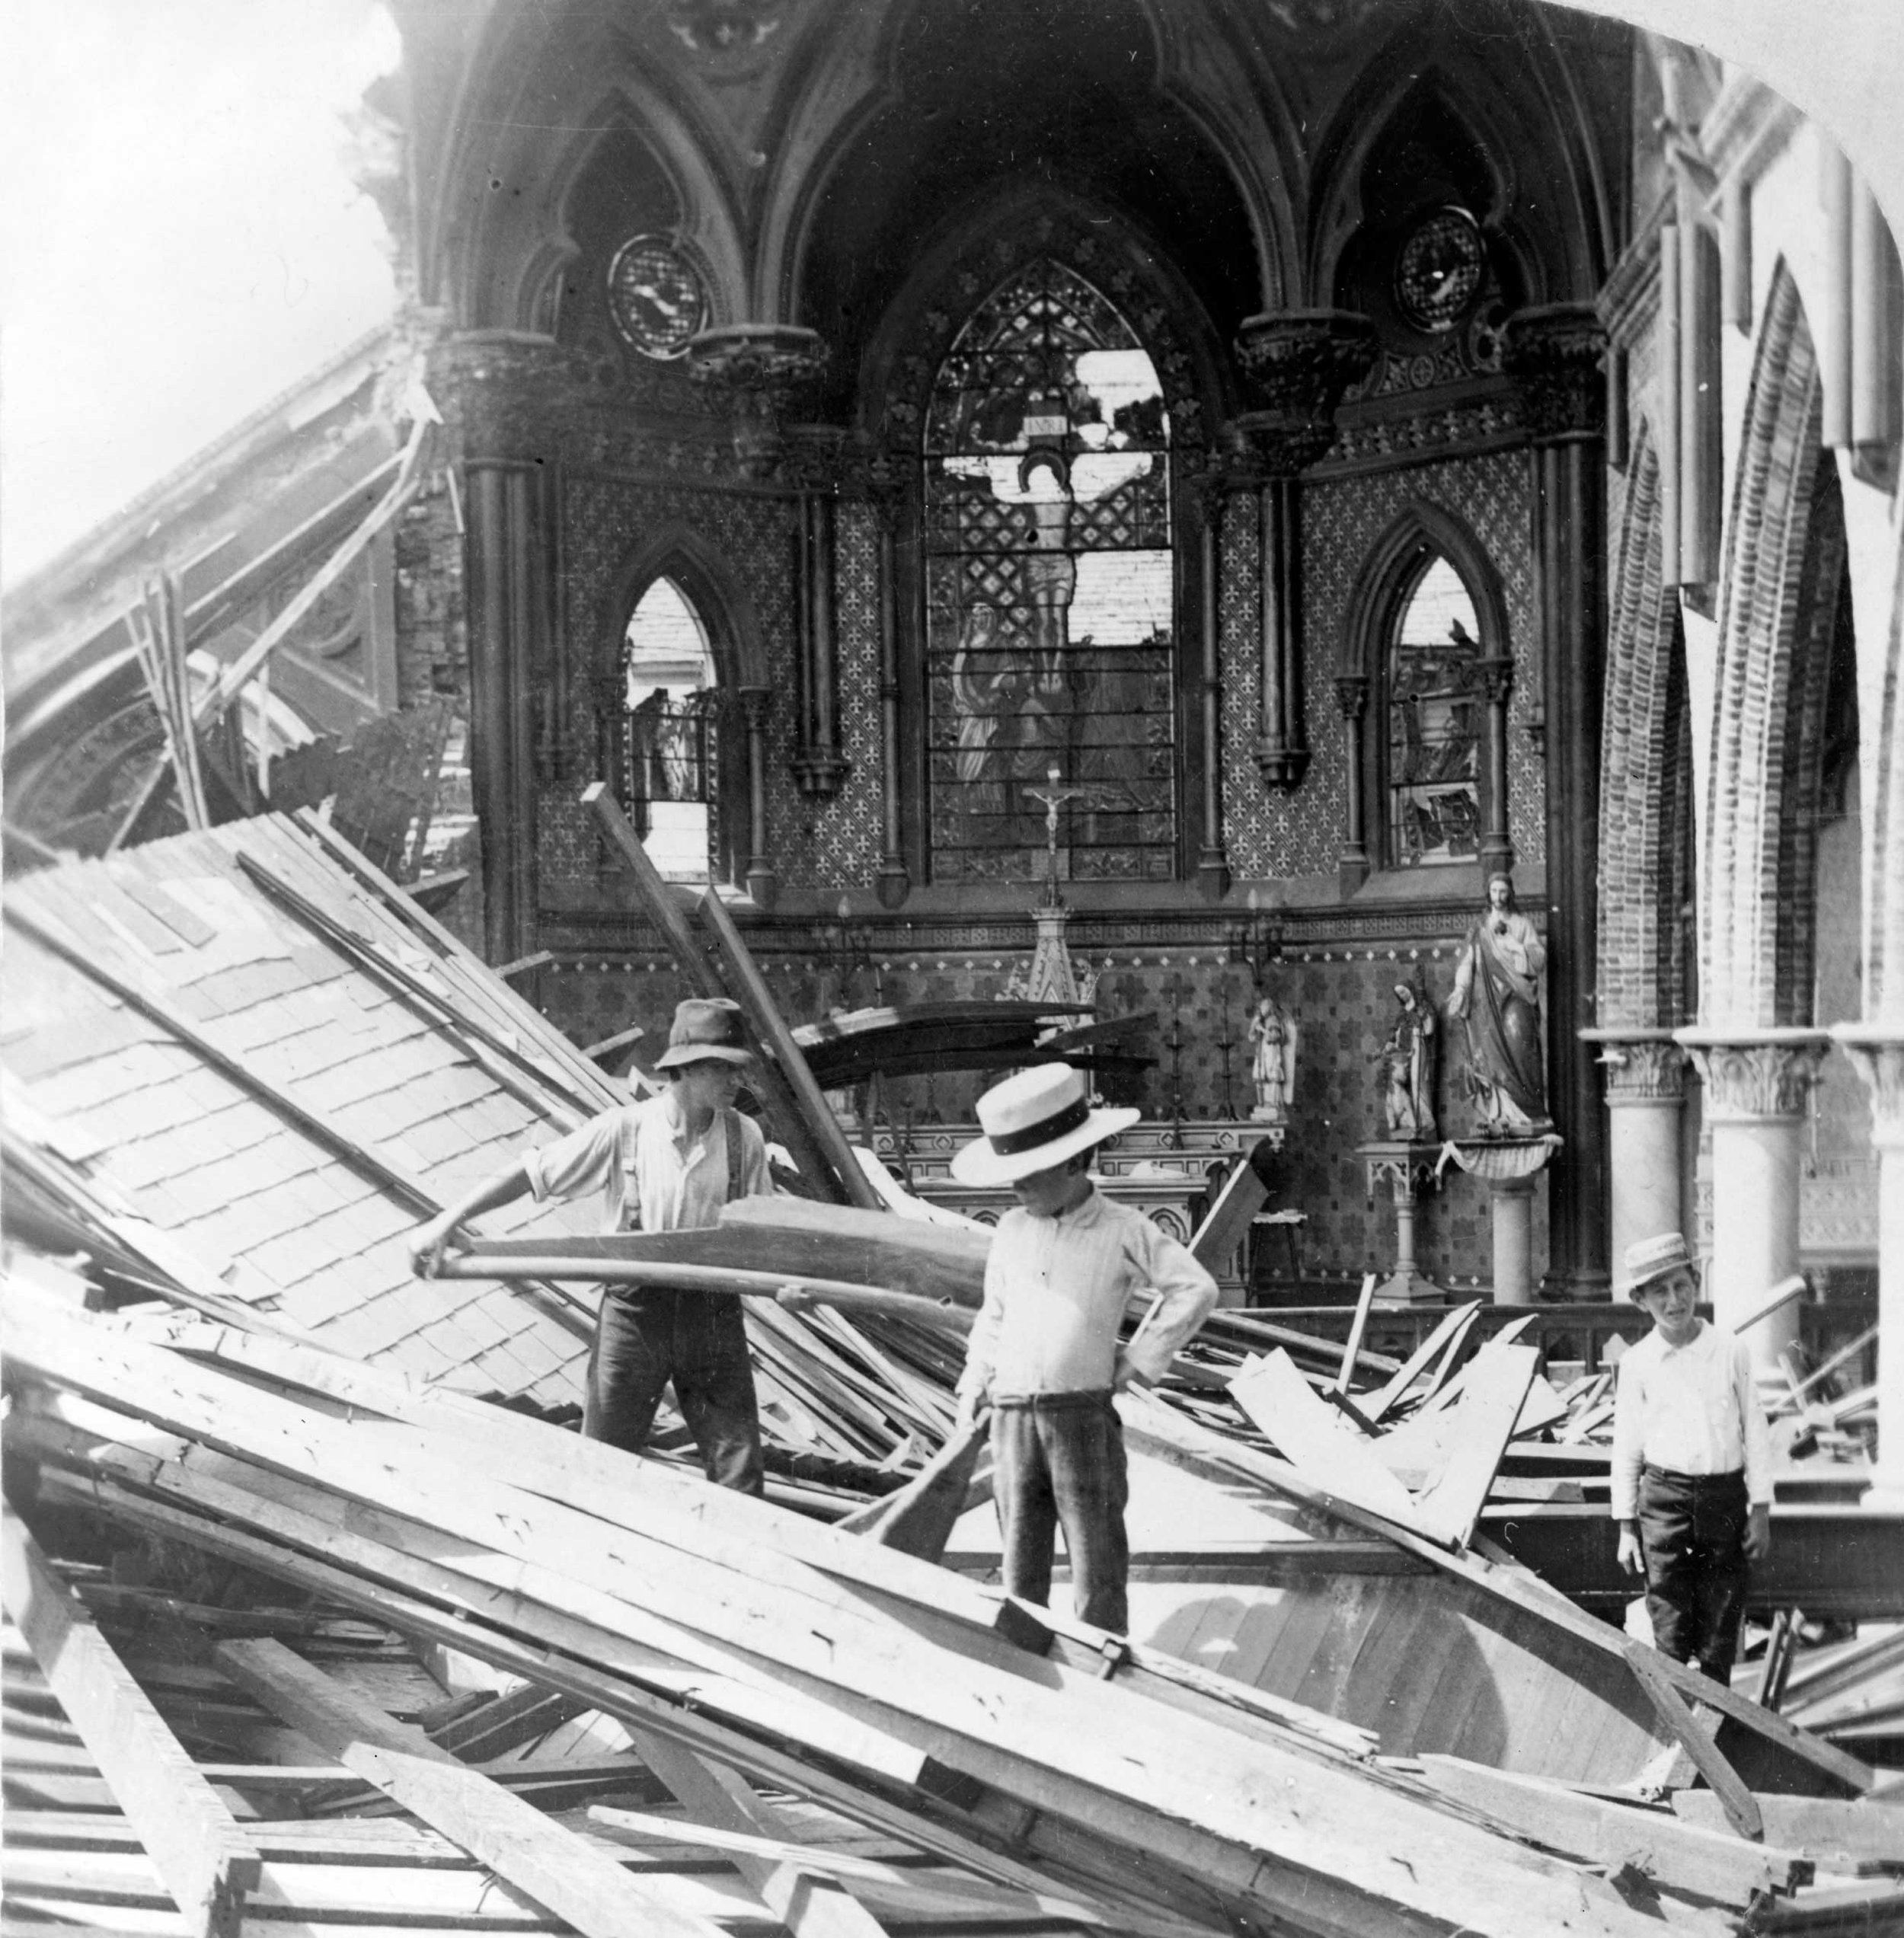 St_Patrick's_Church,_Galveston_hurricane,_1900.jpg